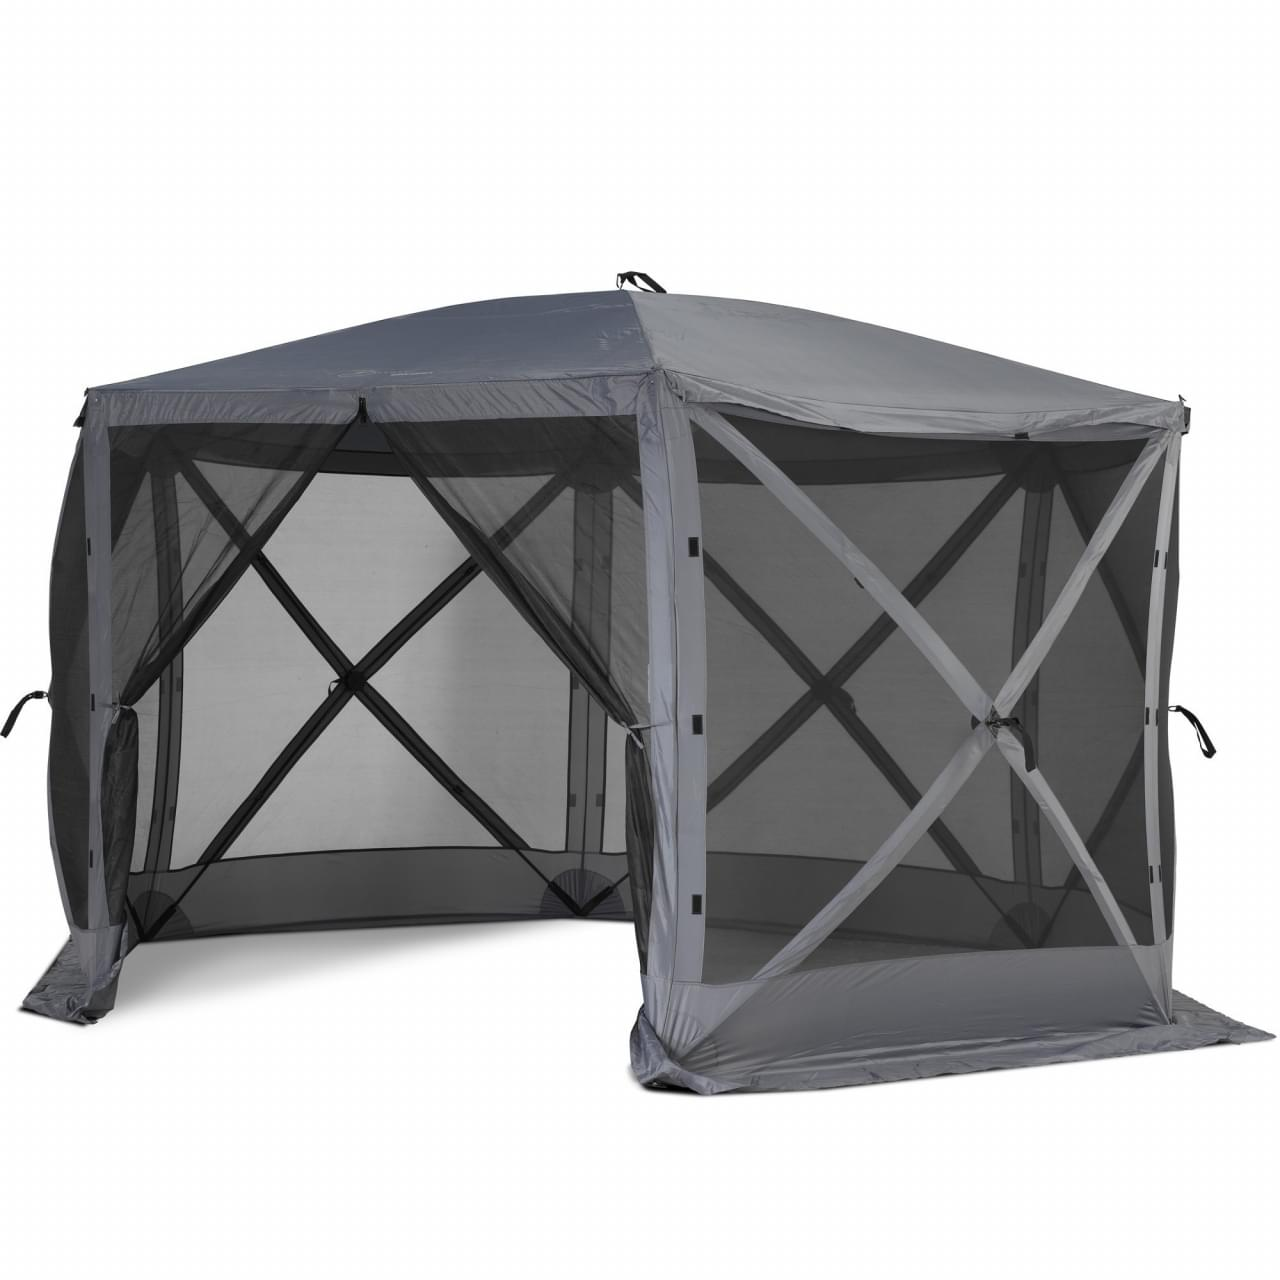 Bardani Quick Lodge 6 - Partytent